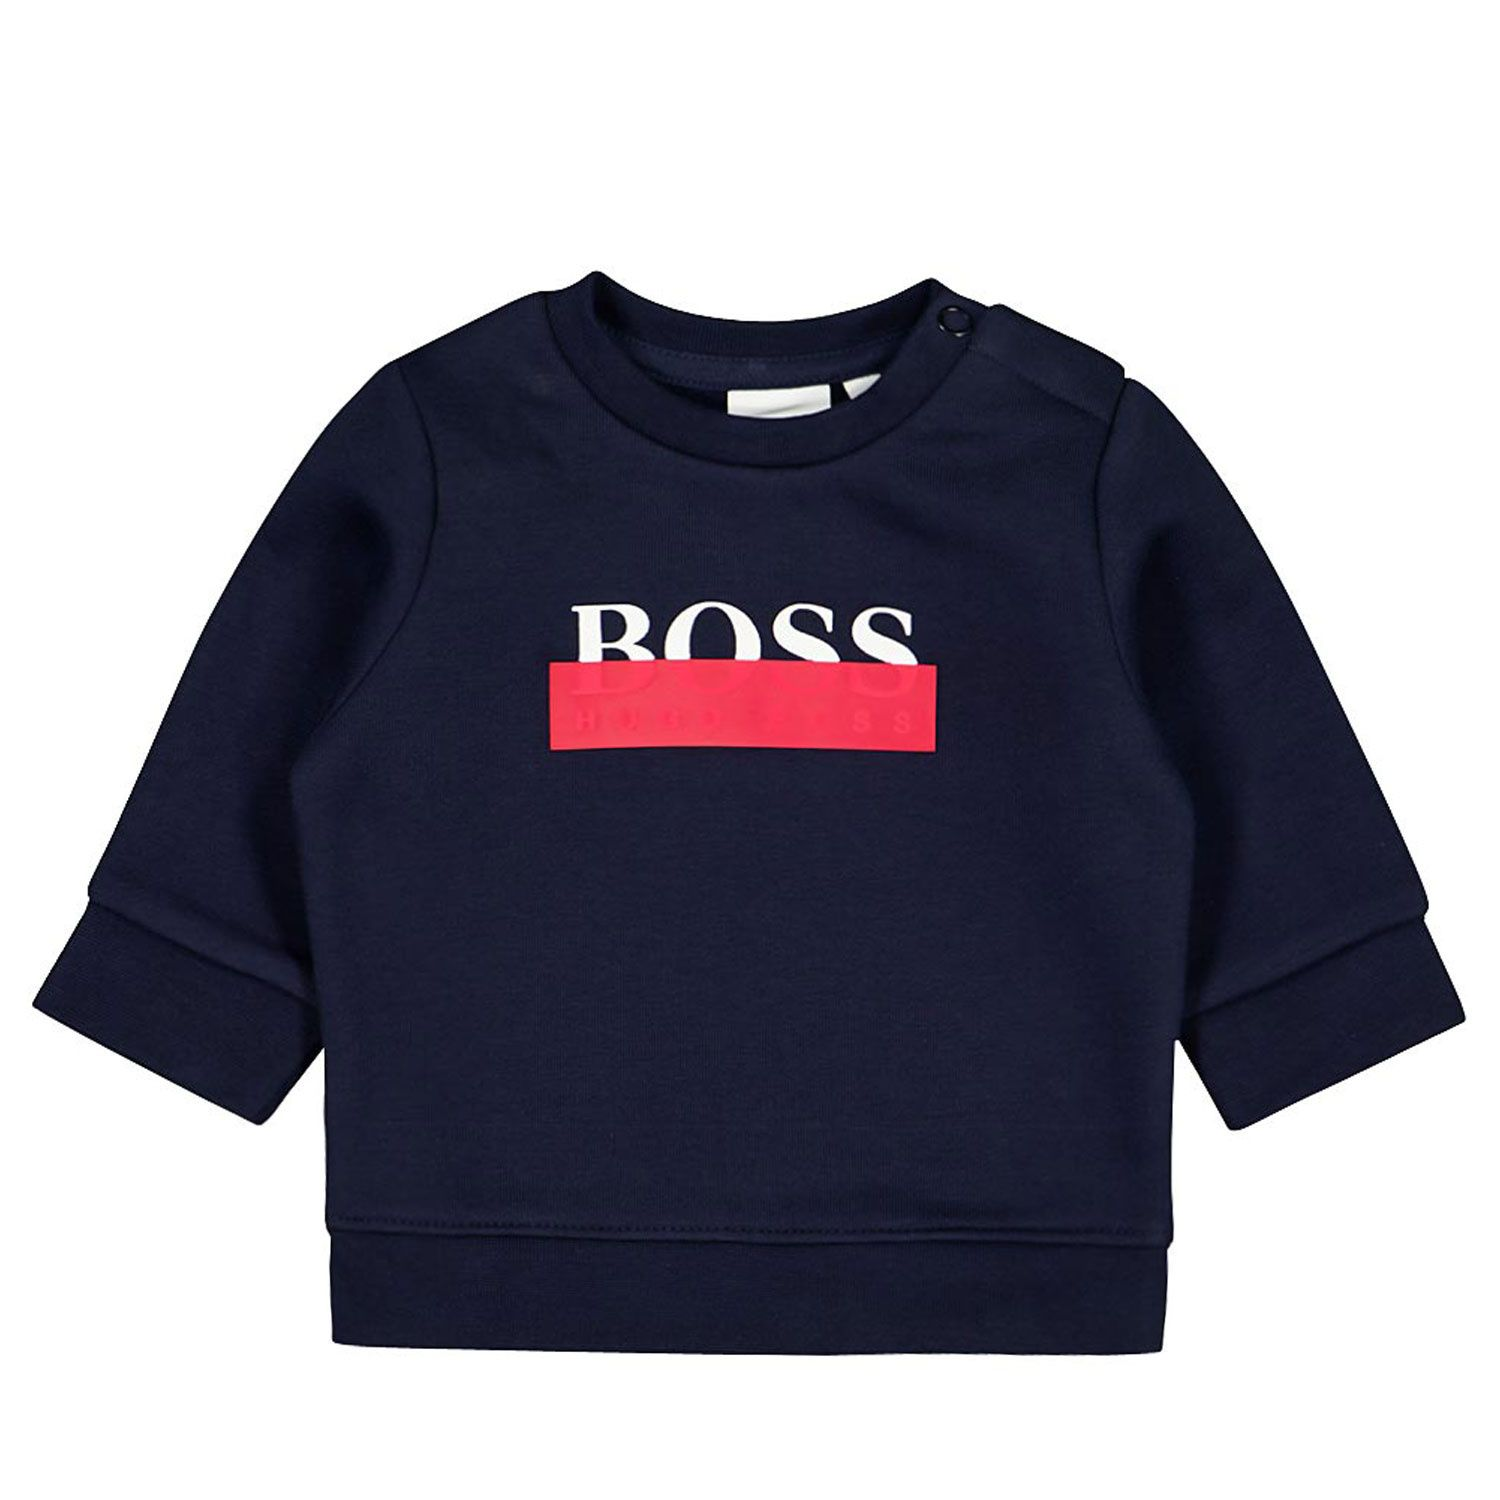 Picture of Boss J05820 baby sweater navy